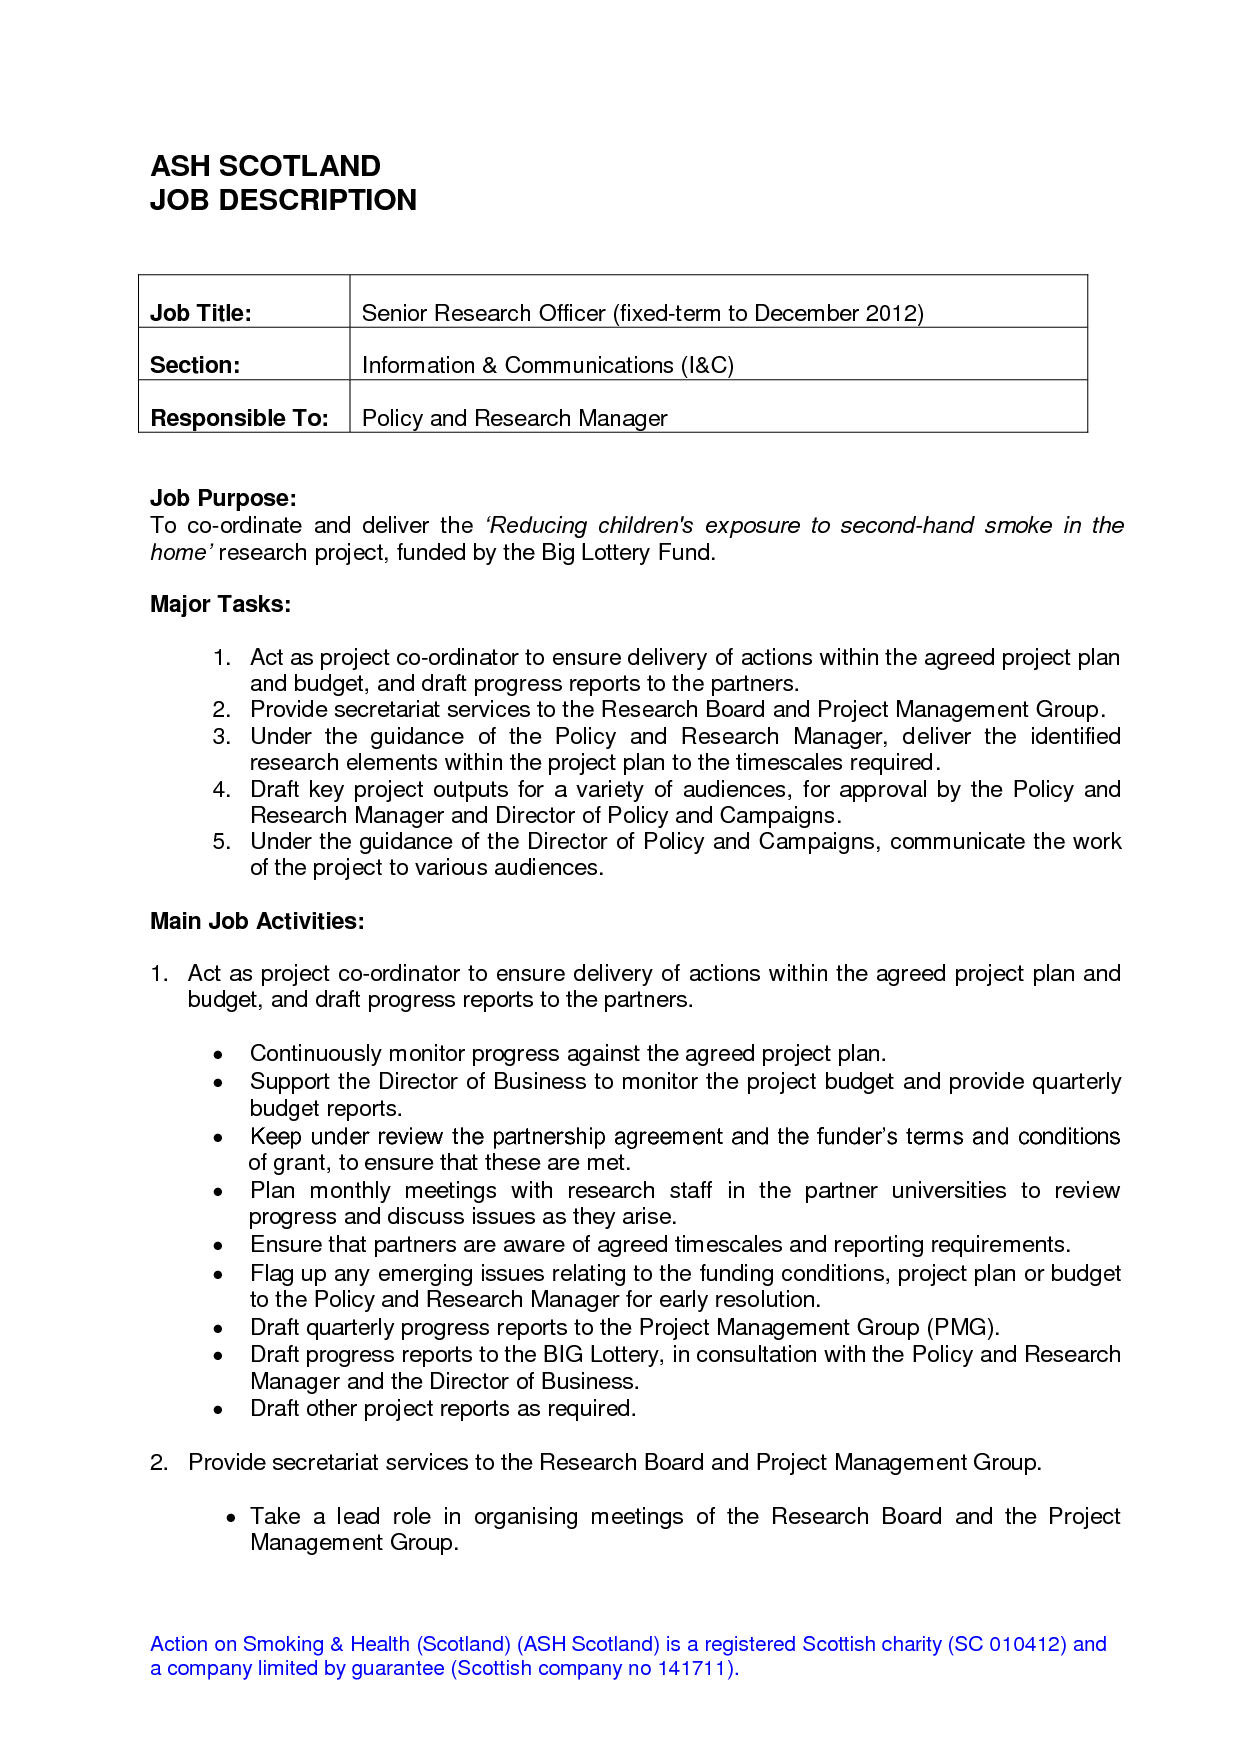 Job description job description forms pinterest job for Kitchen job description